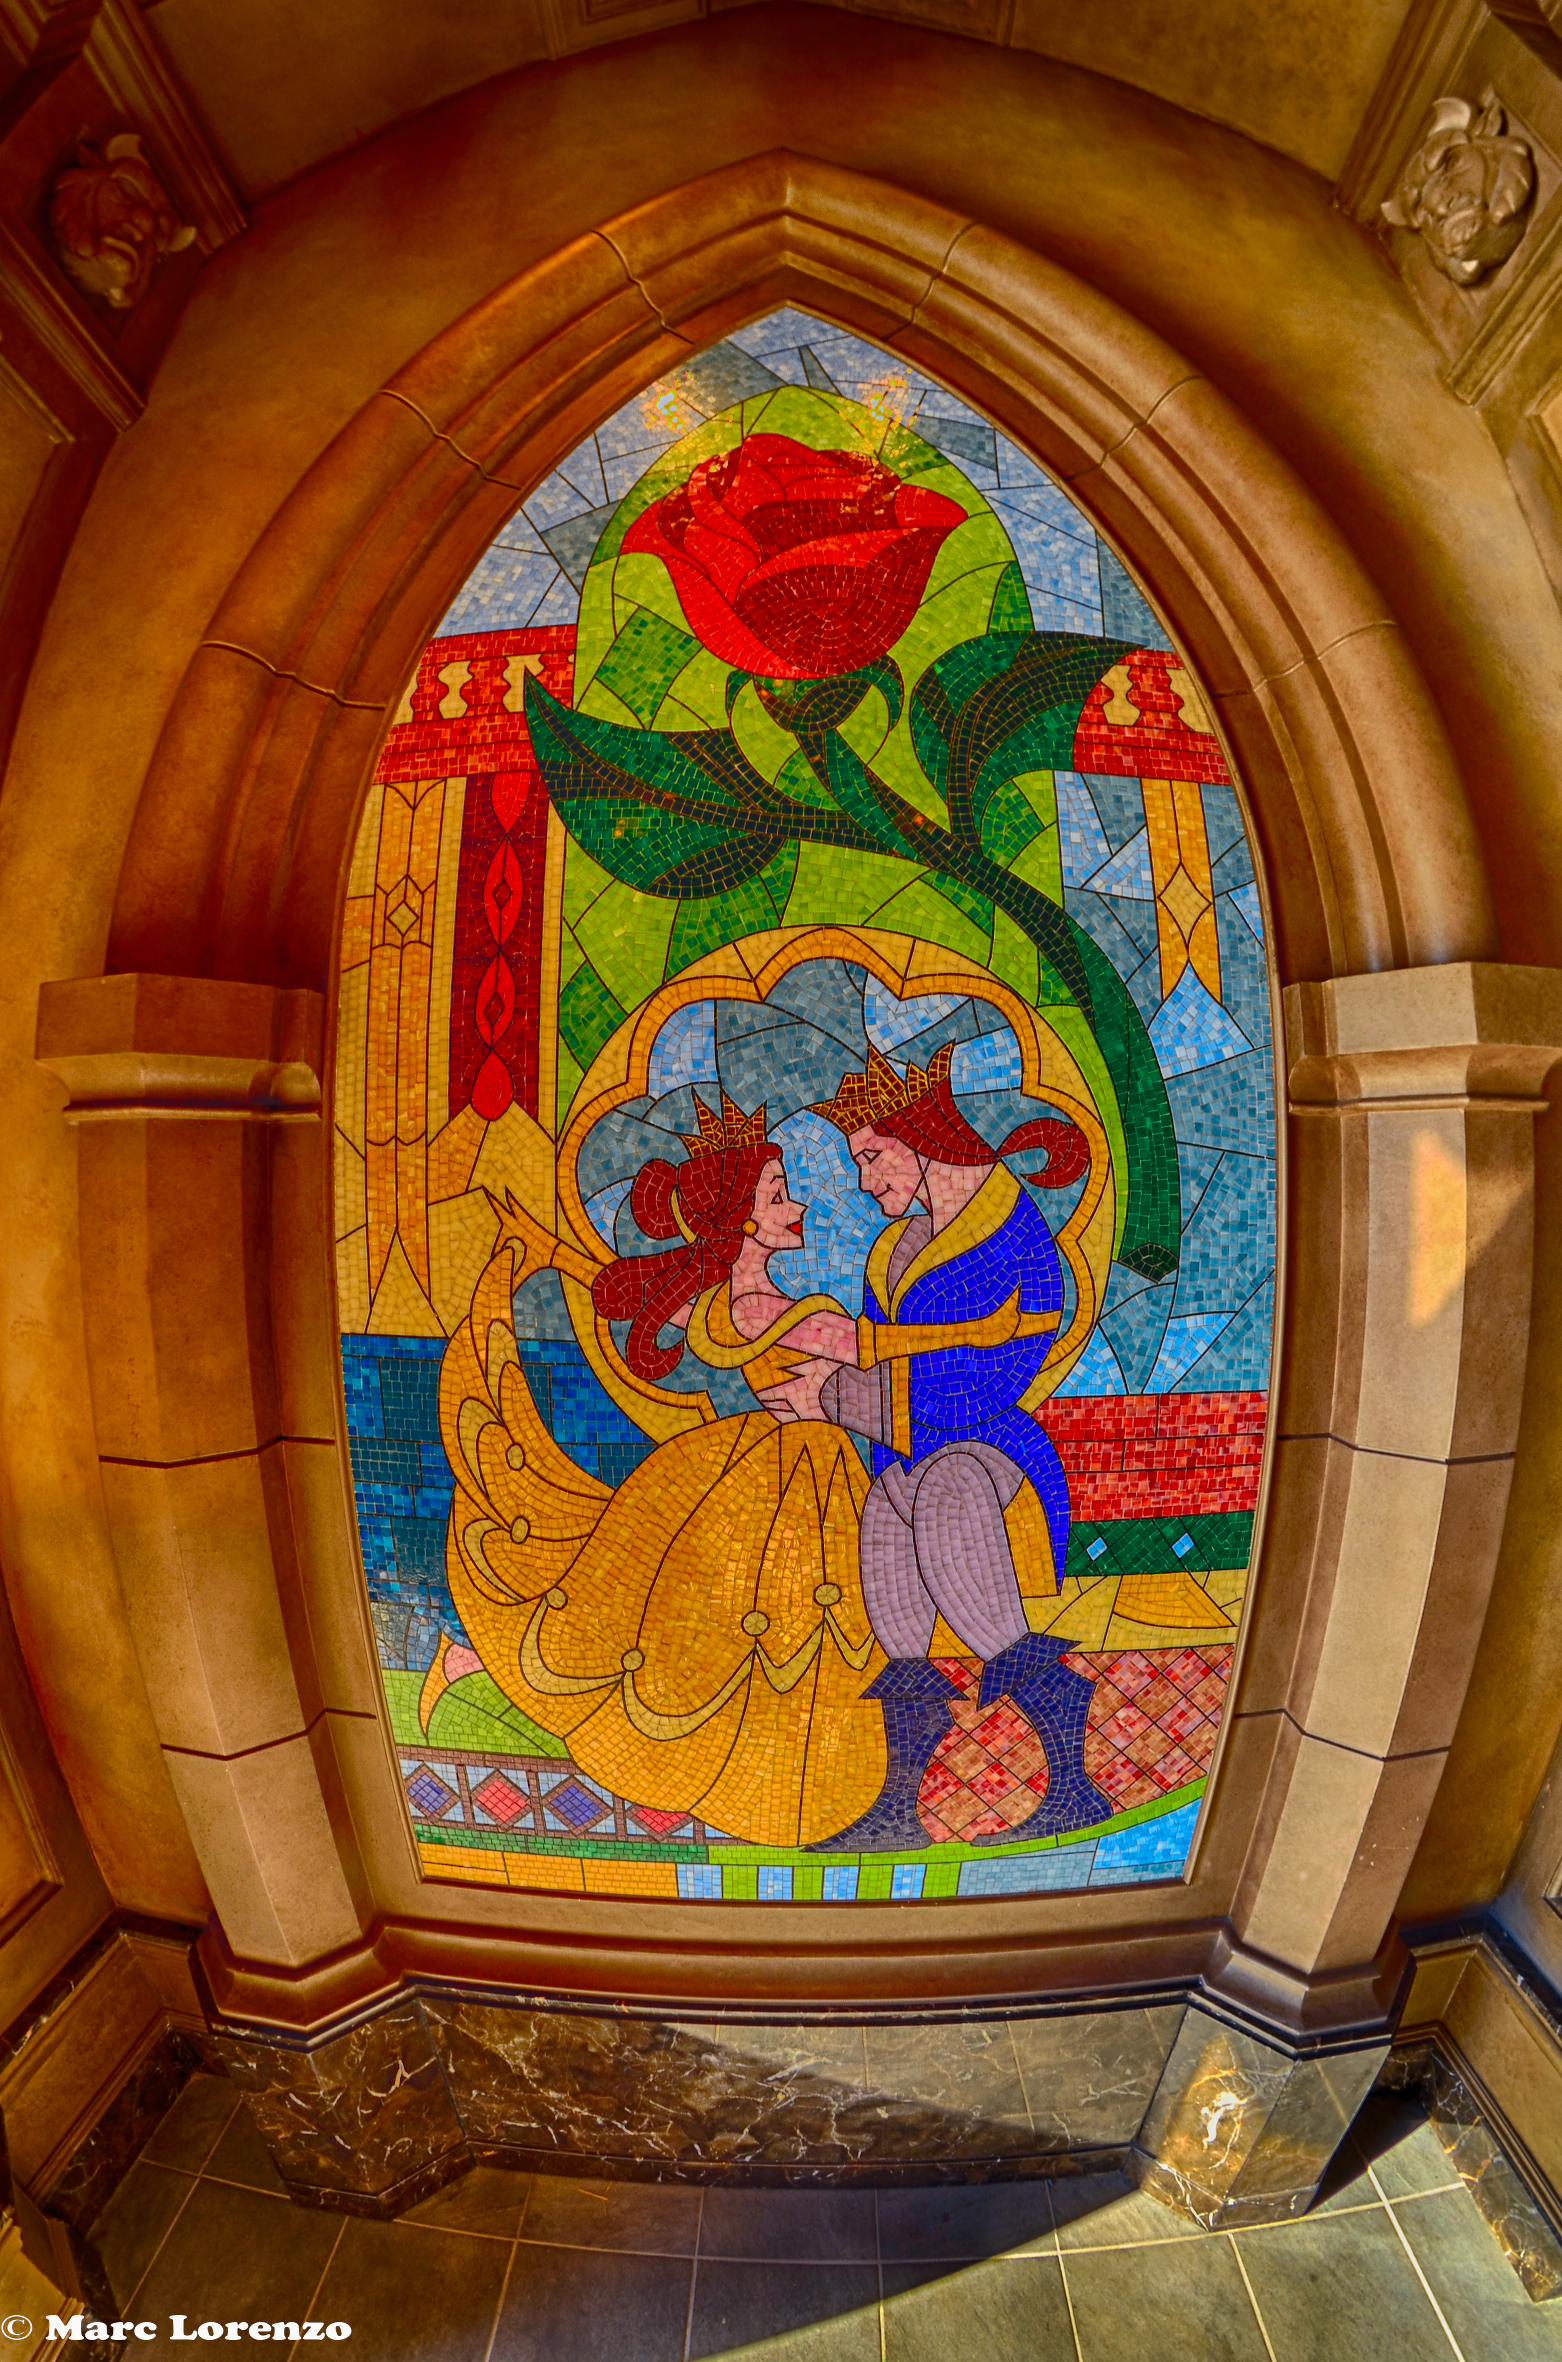 Be Our Guest Restaurant Stain Glass Mural HDR